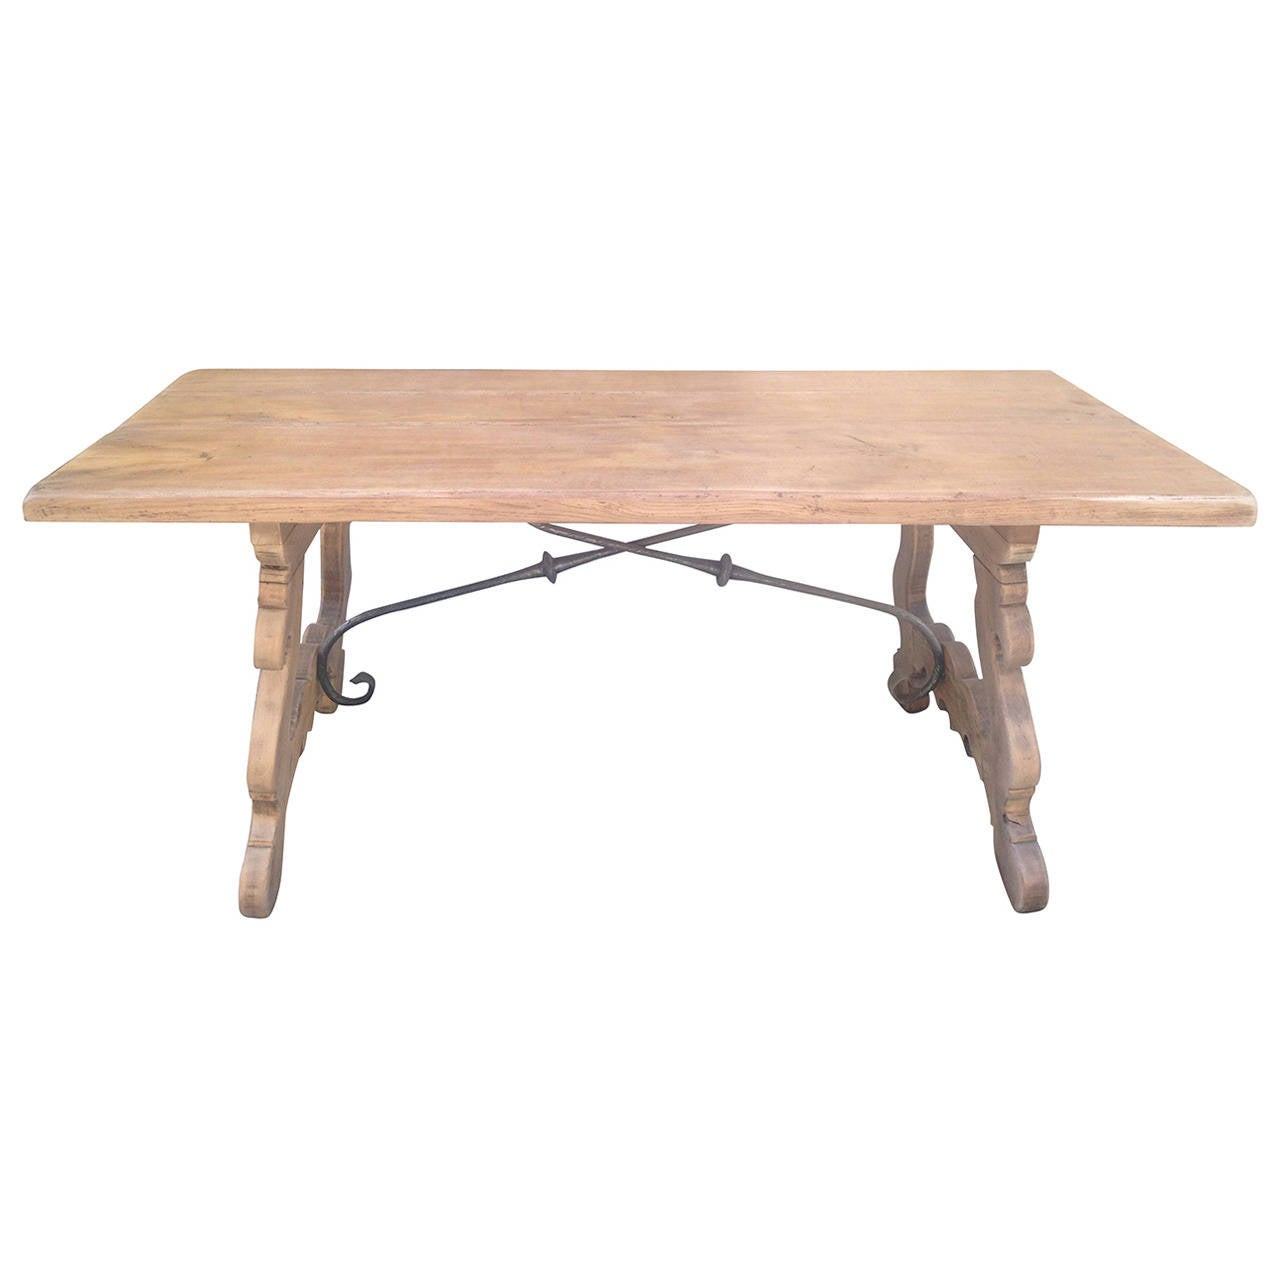 French oak and iron refectory dining table for sale at 1stdibs for Iron dining table